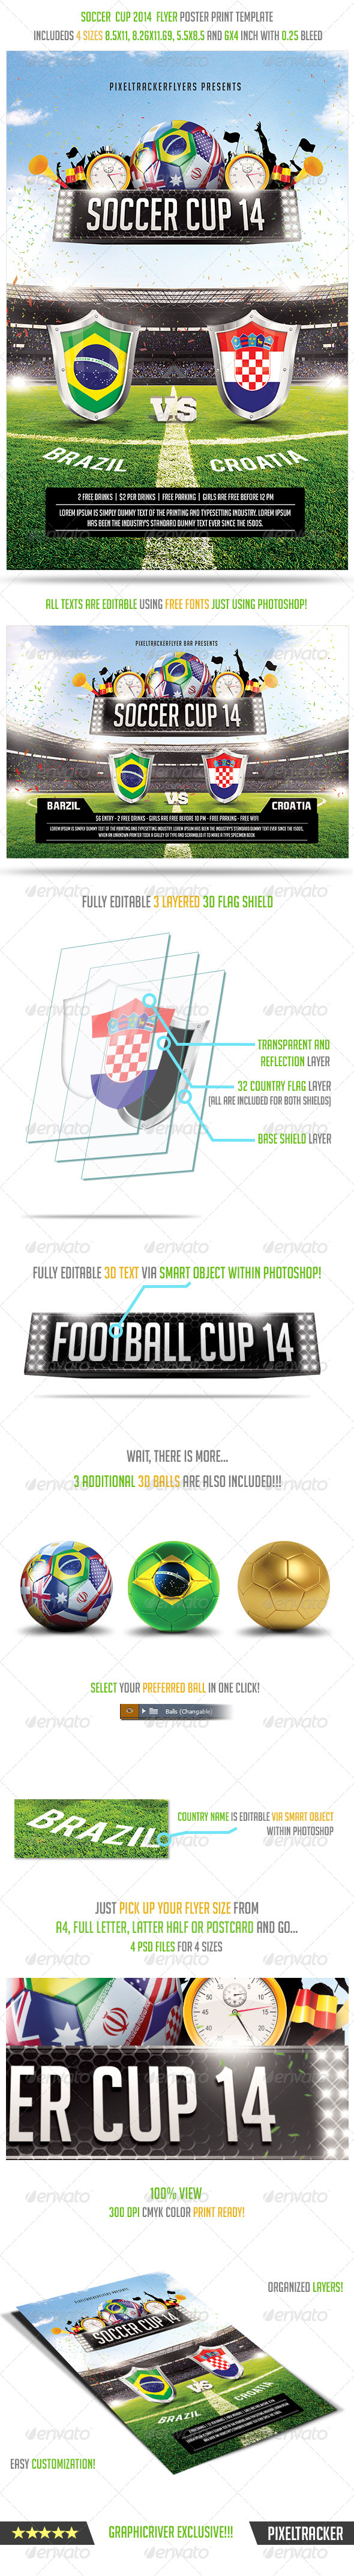 GraphicRiver Brazil Soccer Cup 2014 Football Flyer Poster 7808011